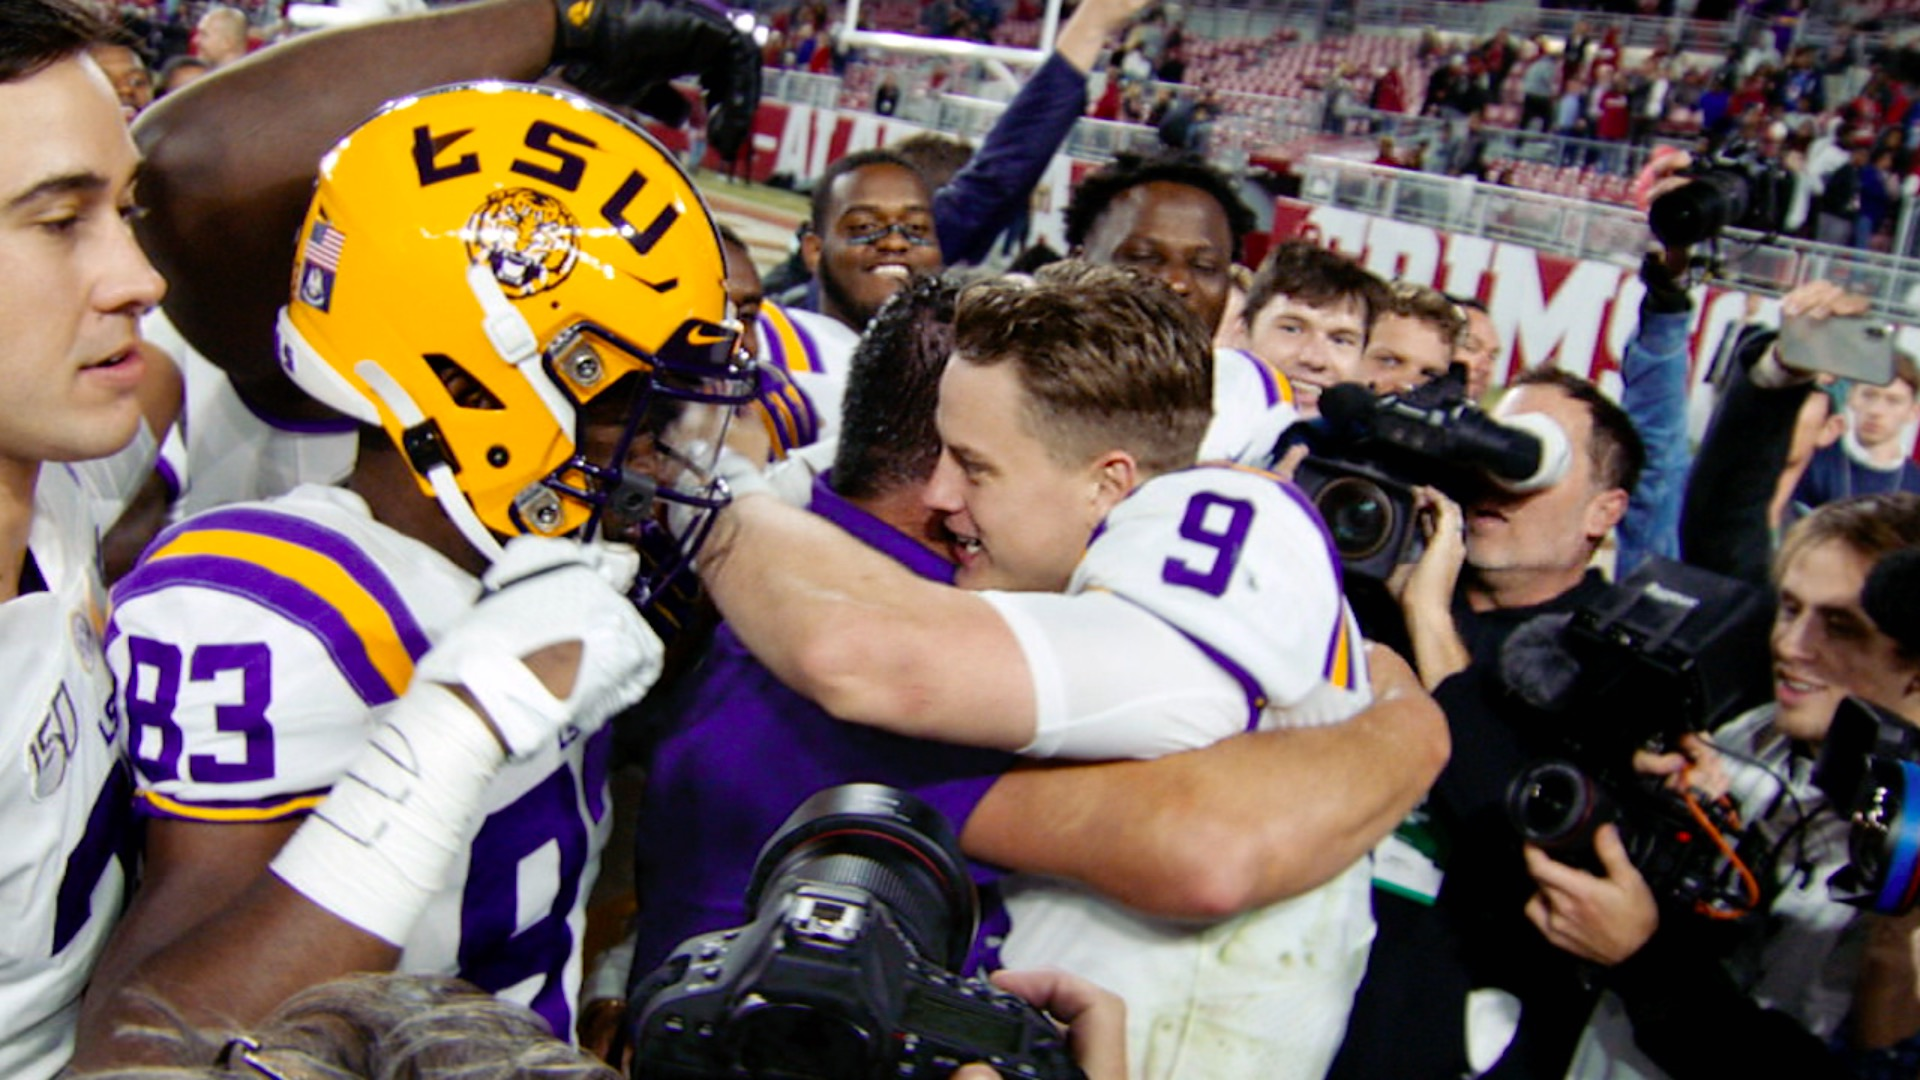 ESPN Crafts One Last Emotional Ad for the College Football Season